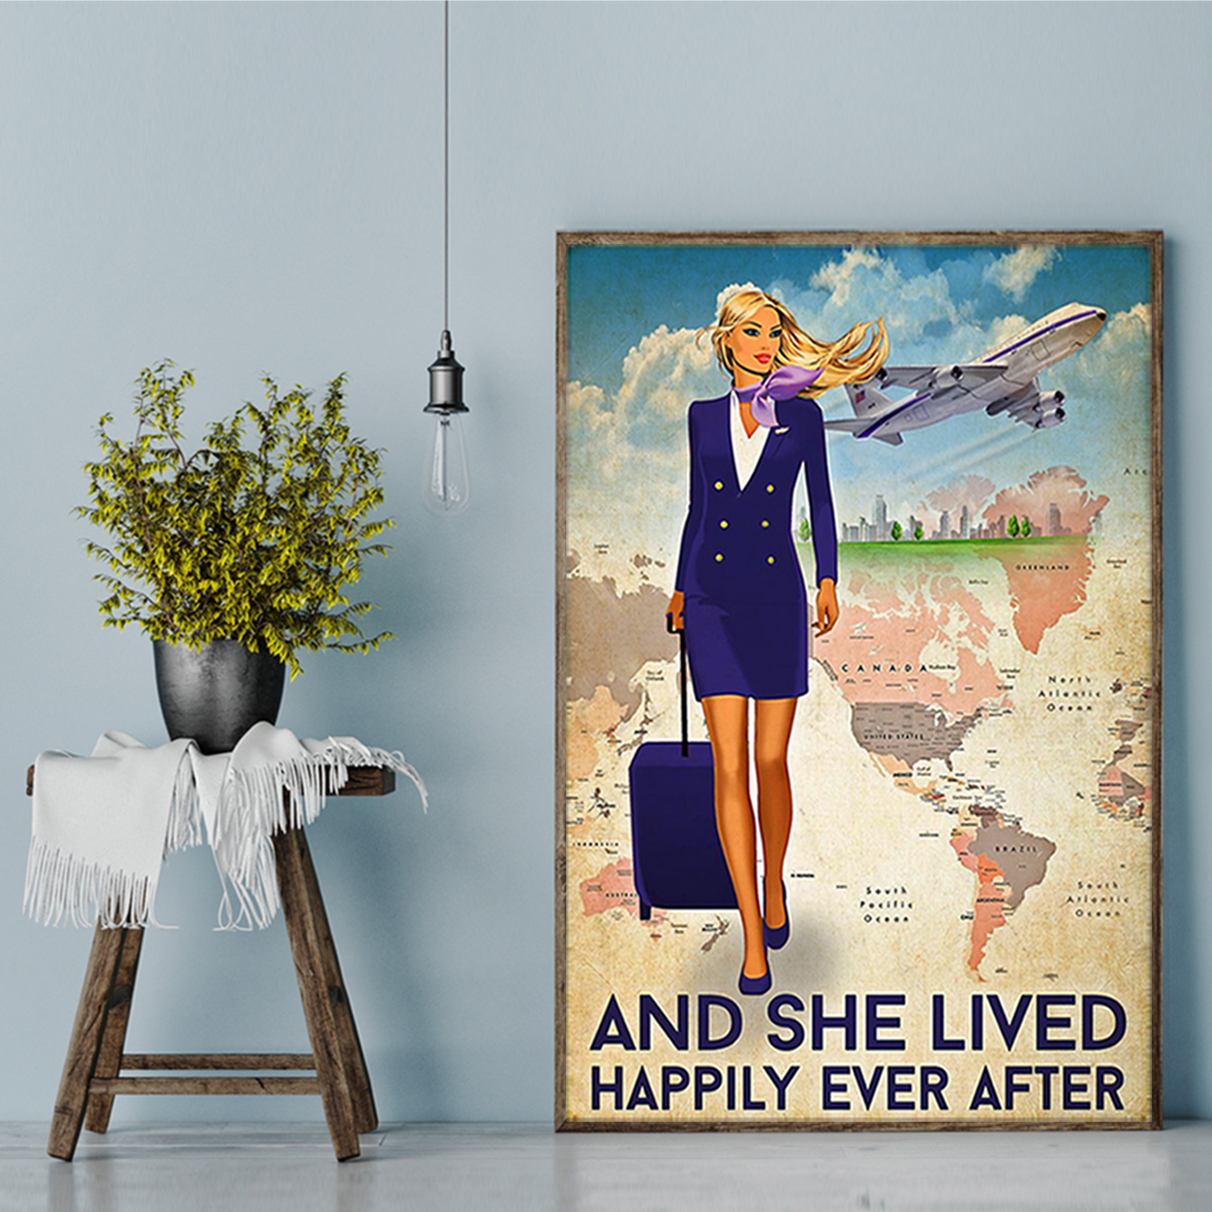 Flight attendant and she lived happily ever after poster A3